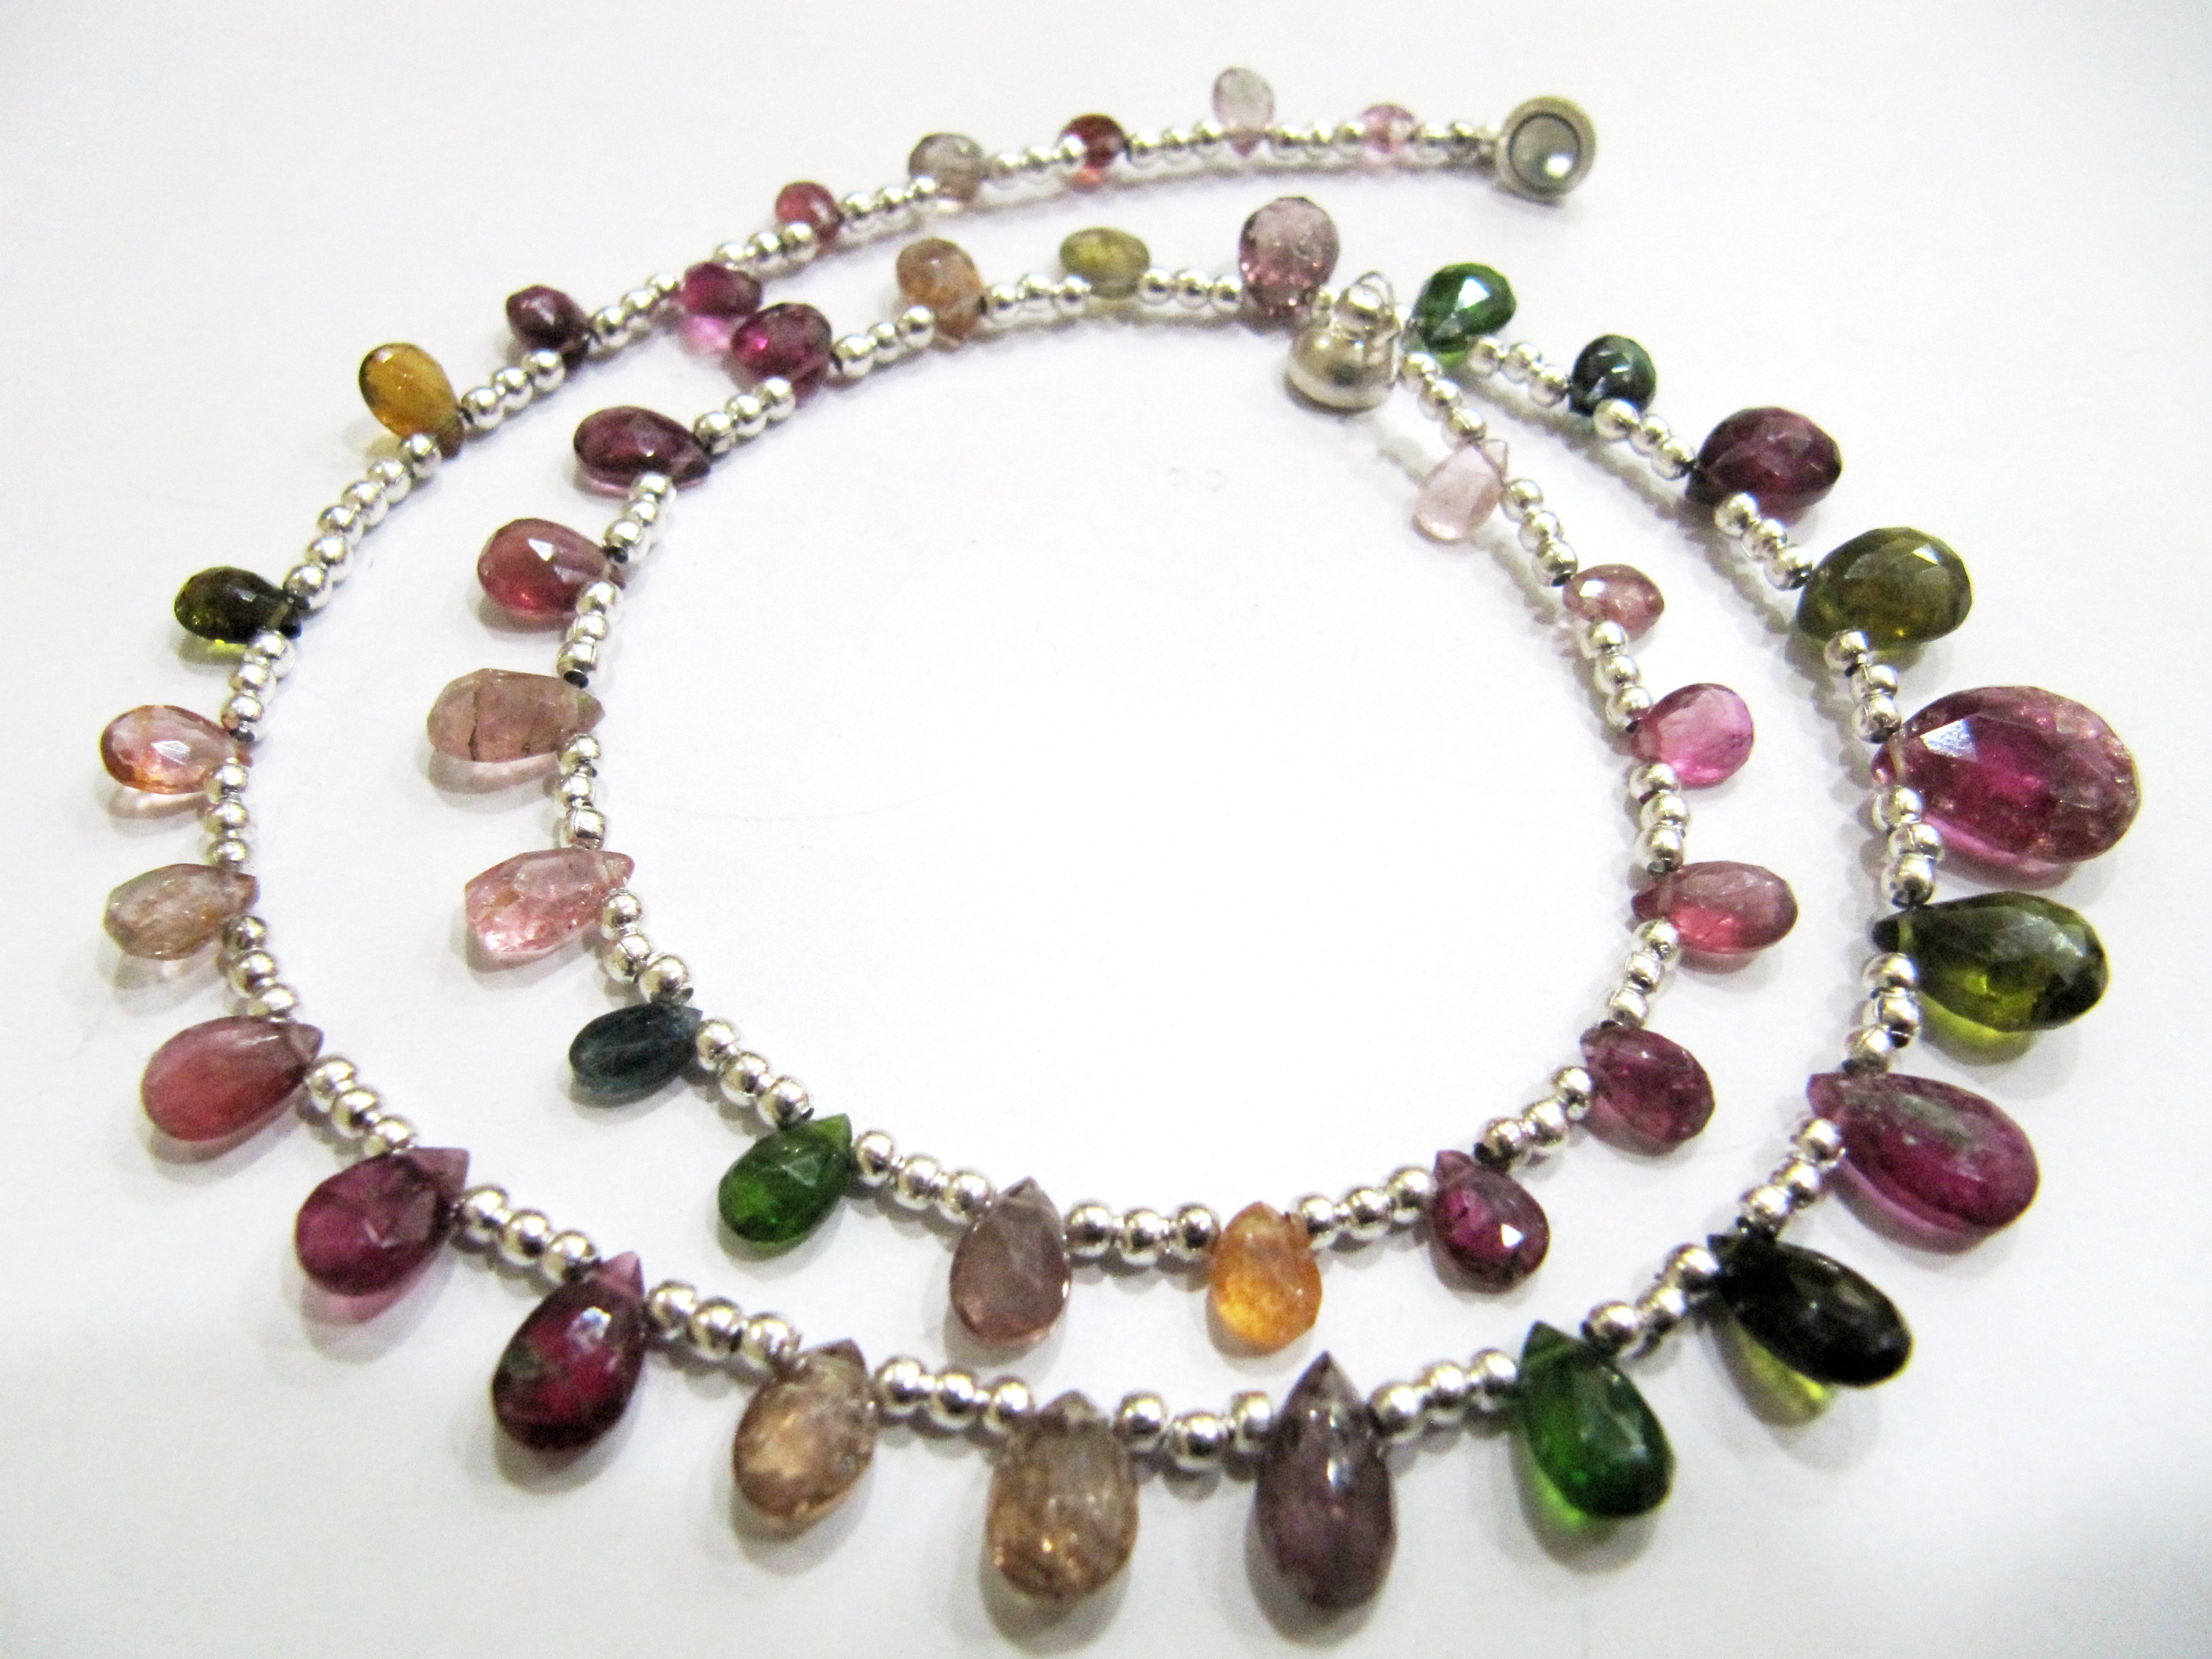 4X6mm to 9X12mm Natural Multi Tourmaline Briolette Faceted Pear Shape Necklace